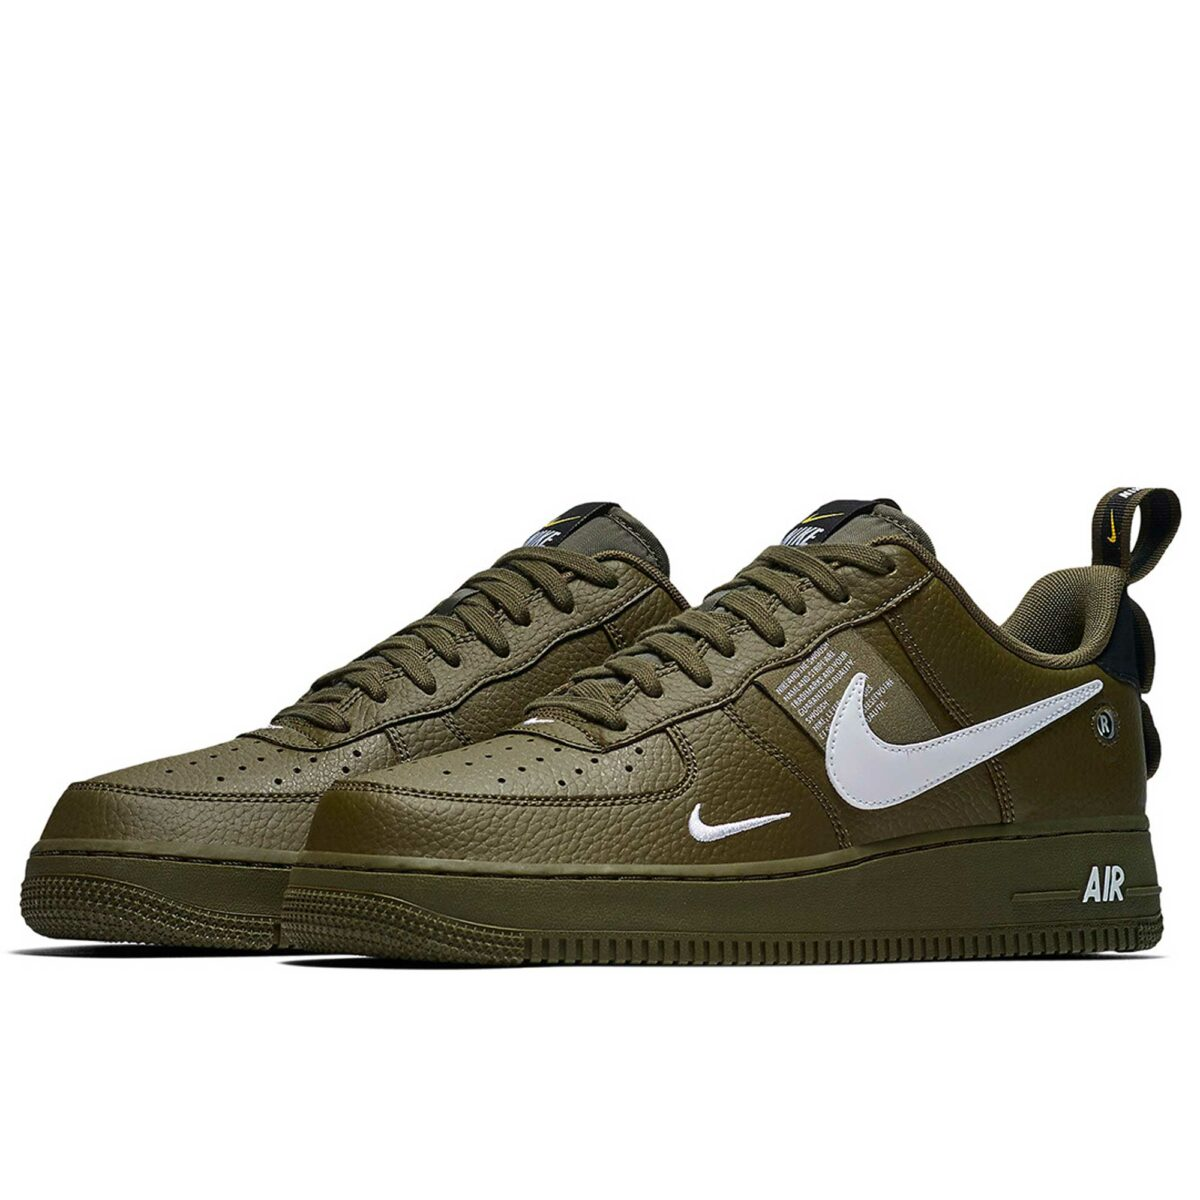 nike air force 1 ´07 LV8 utility olive canvas AJ7747_300 купить